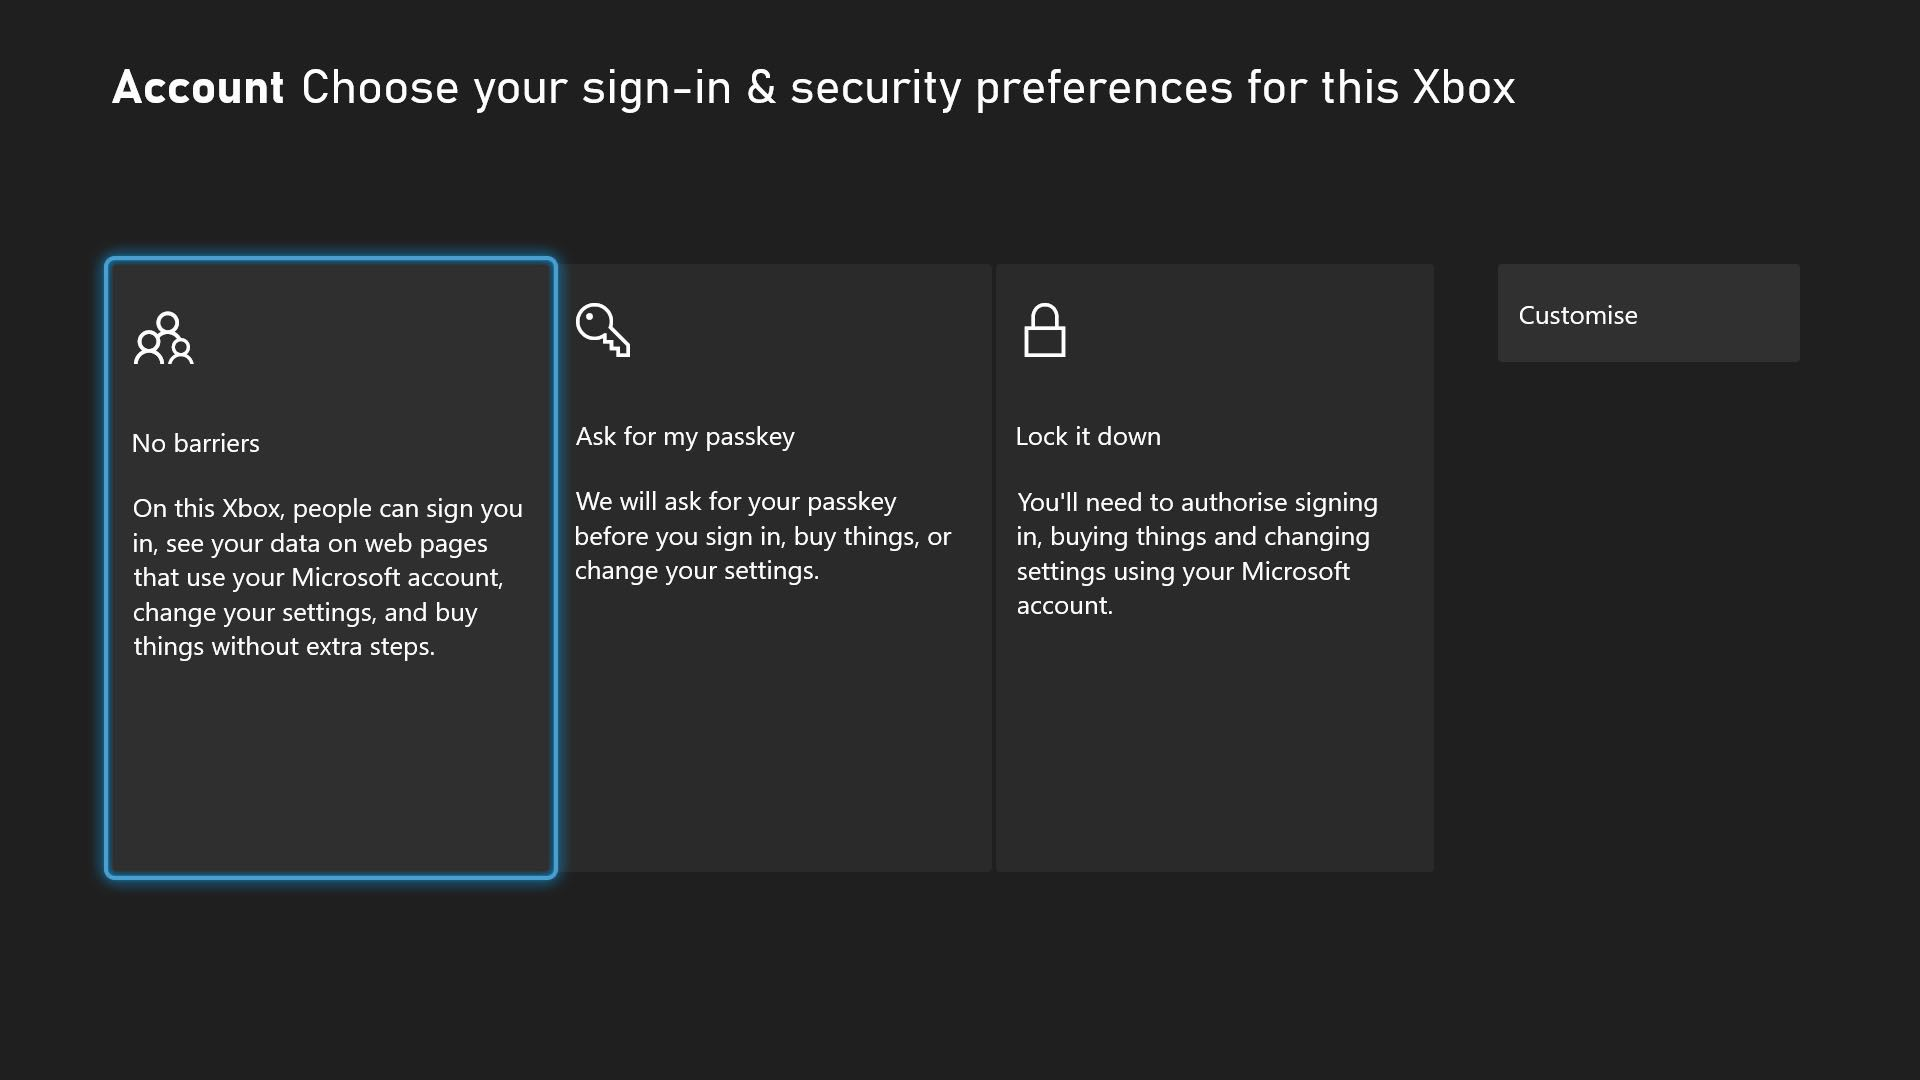 Xbox Series X Family Settings with Ask For my passkey highlighted